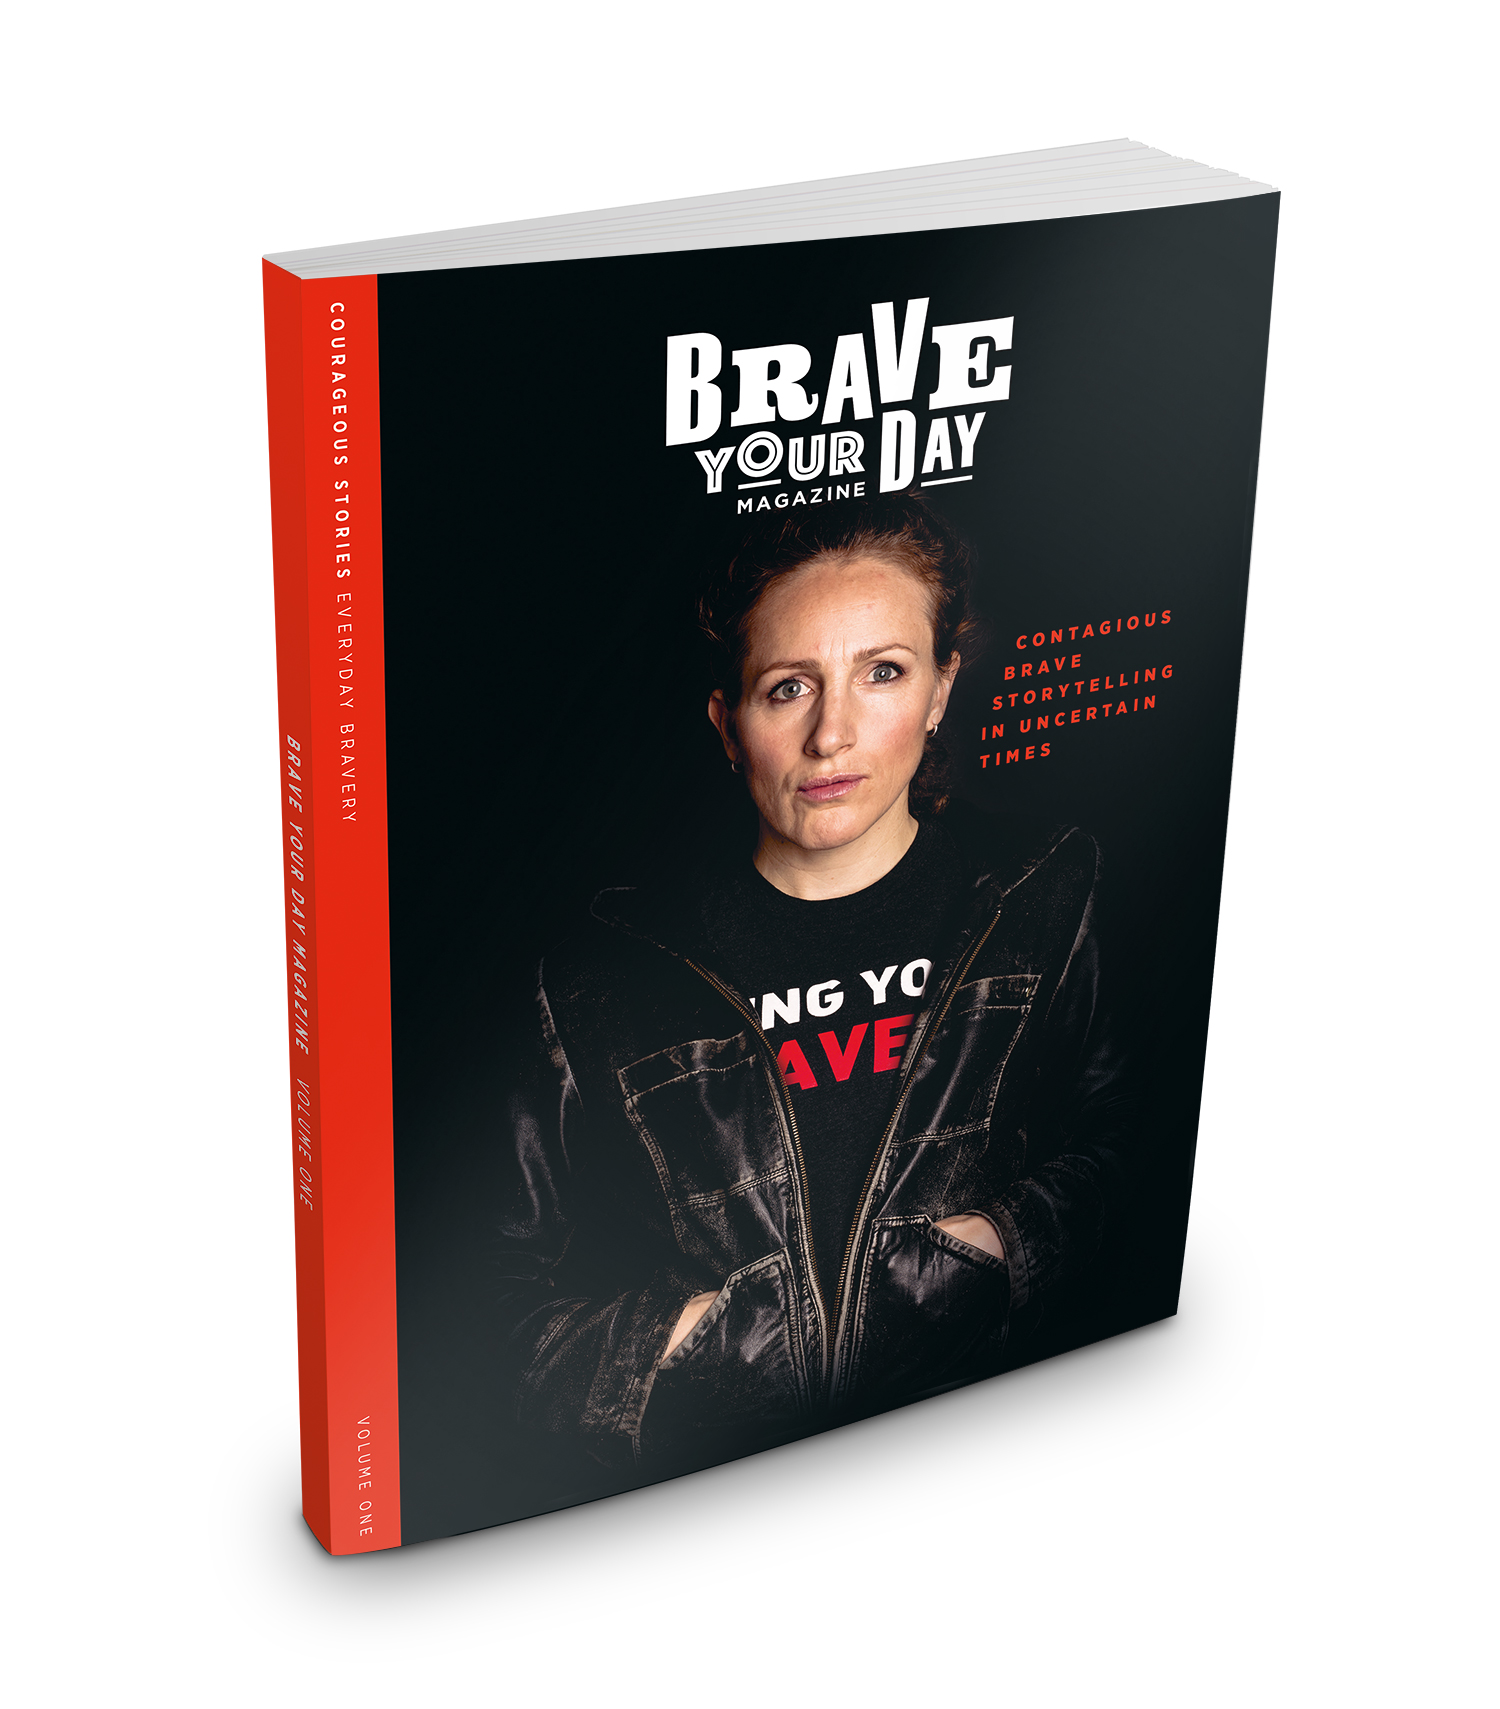 https://www.braveyourdaymag.com/new-products/bydmag-volume-one